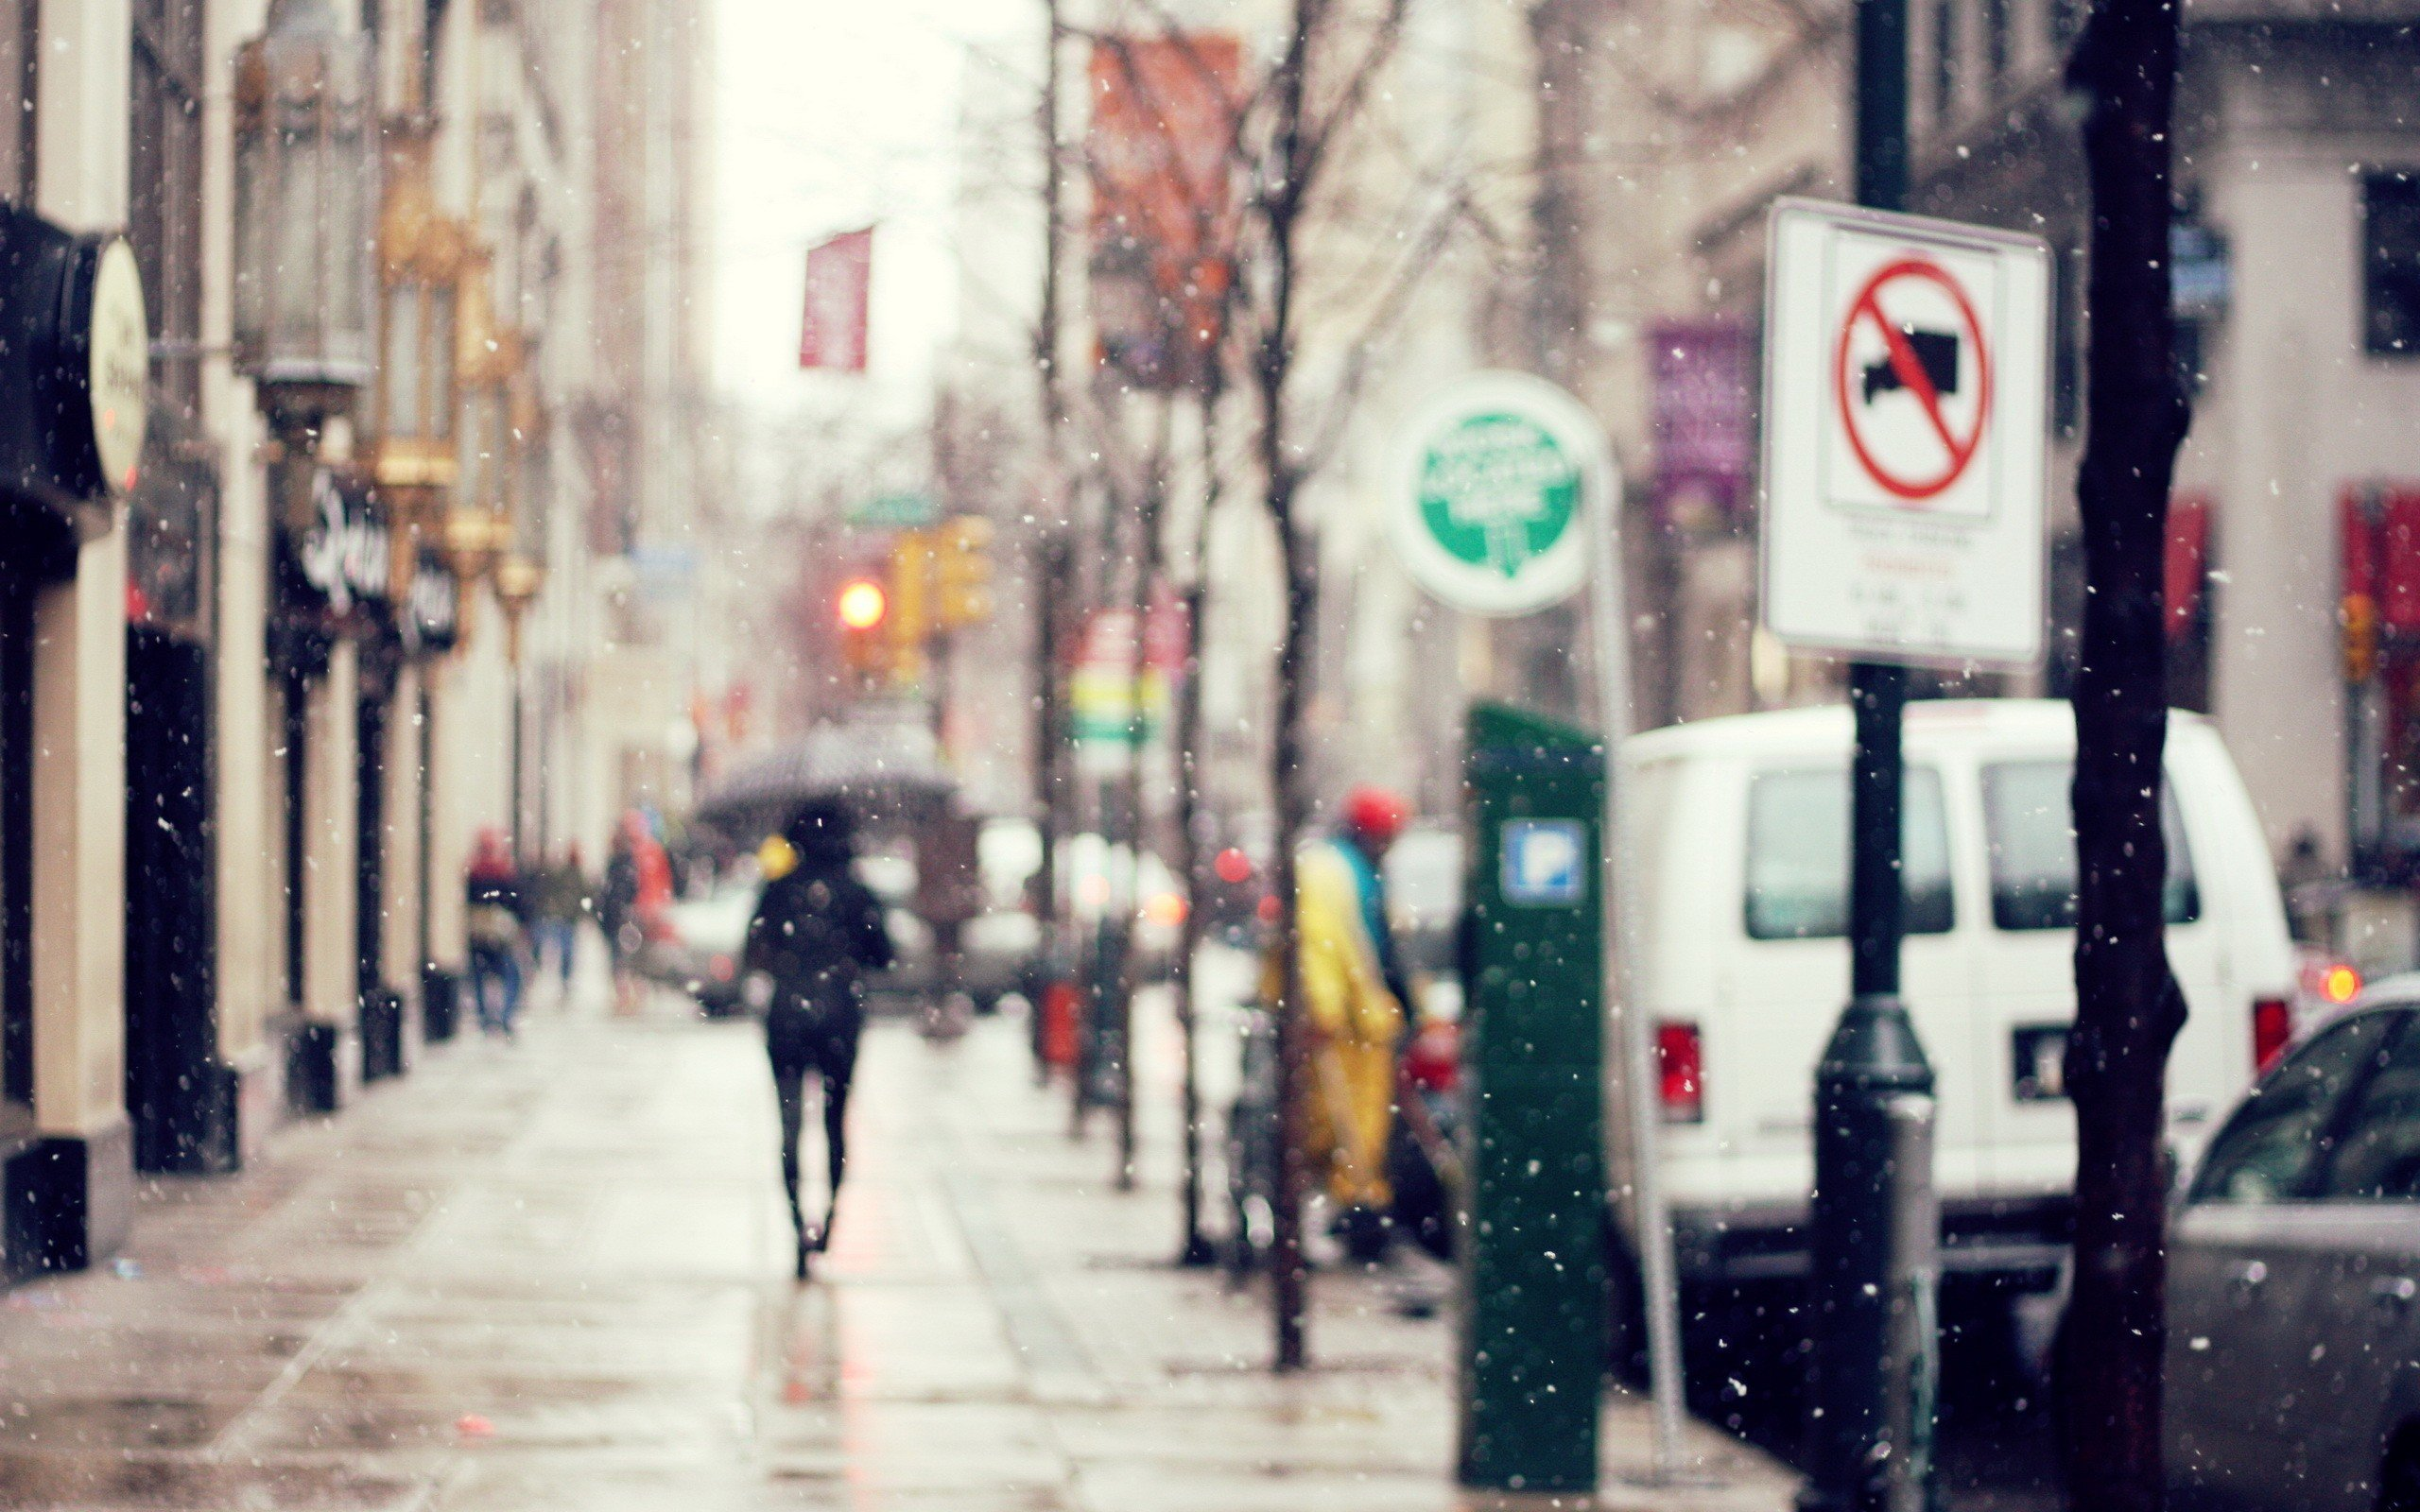 Snow Cityscapes Vehicles Blurred Street Signs Streetscape Wallpaper